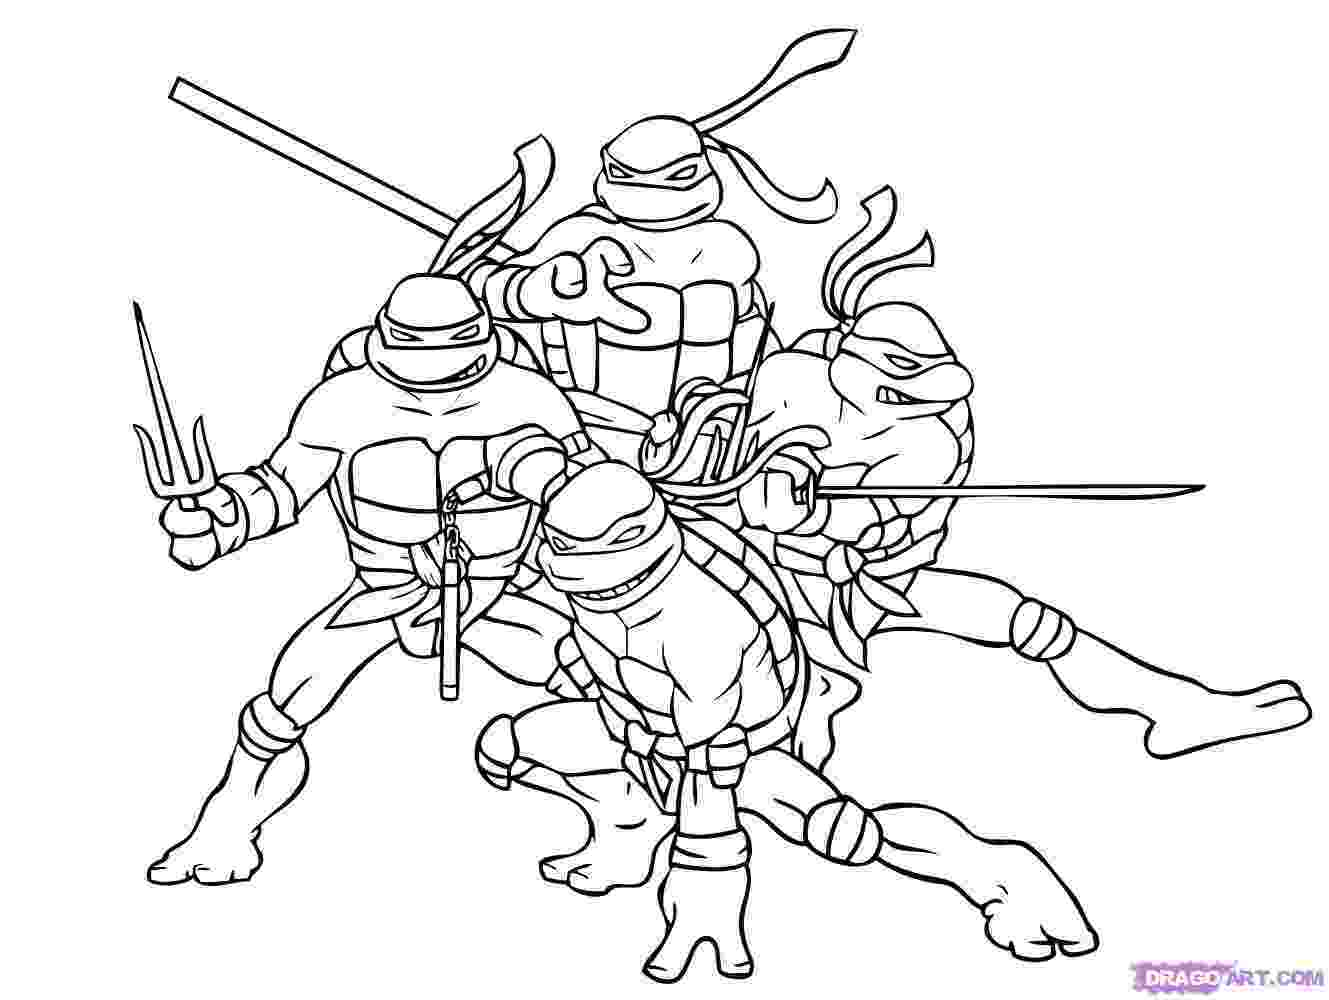 ninja turtles coloring pictures 136 best images about coloring sheets on pinterest turtles ninja pictures coloring